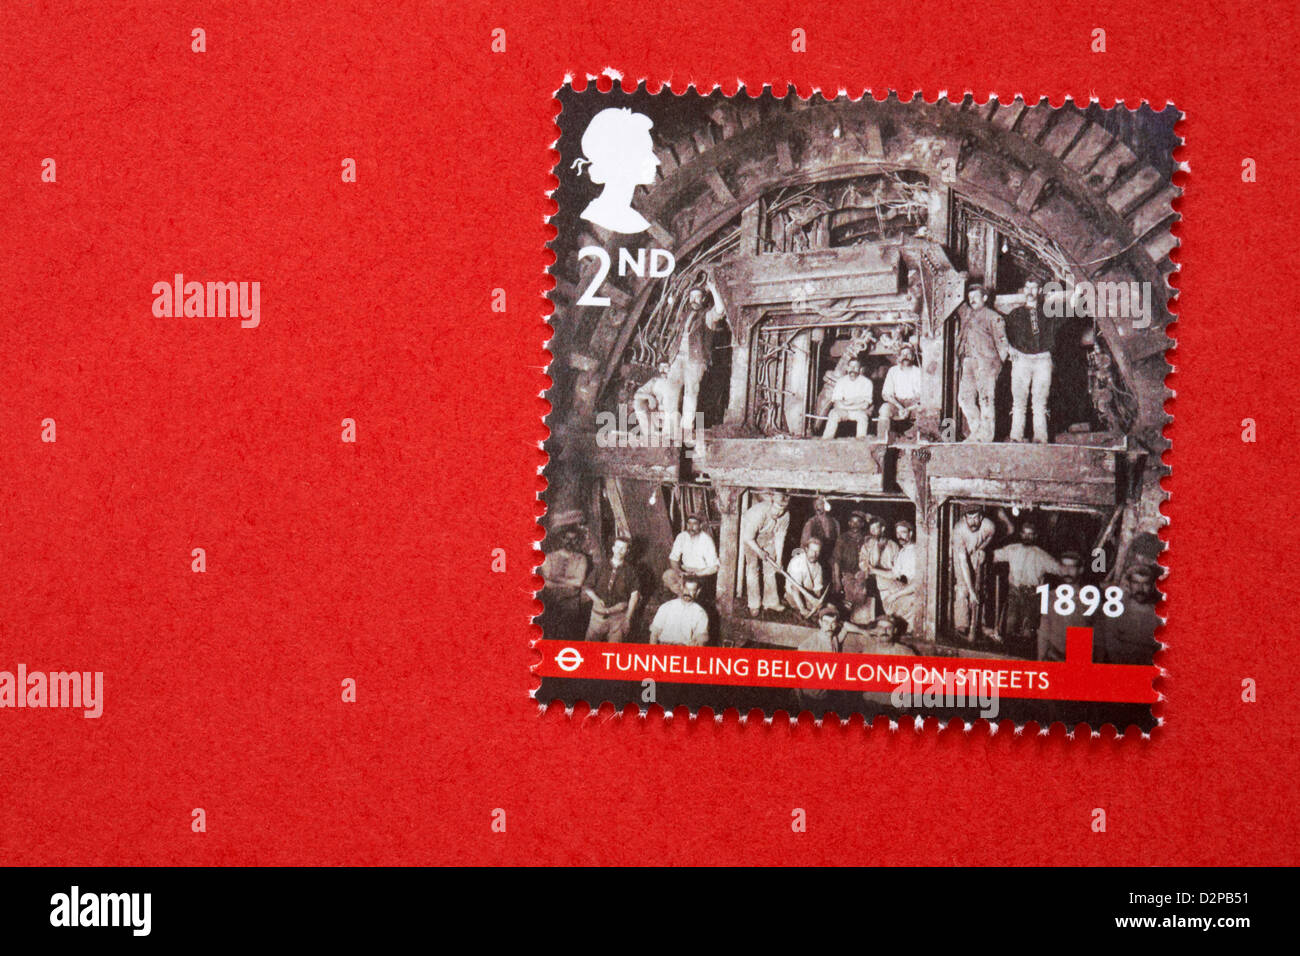 2nd class underground stamp on red envelope - Tunnelling below London streets 1898 - Stock Image